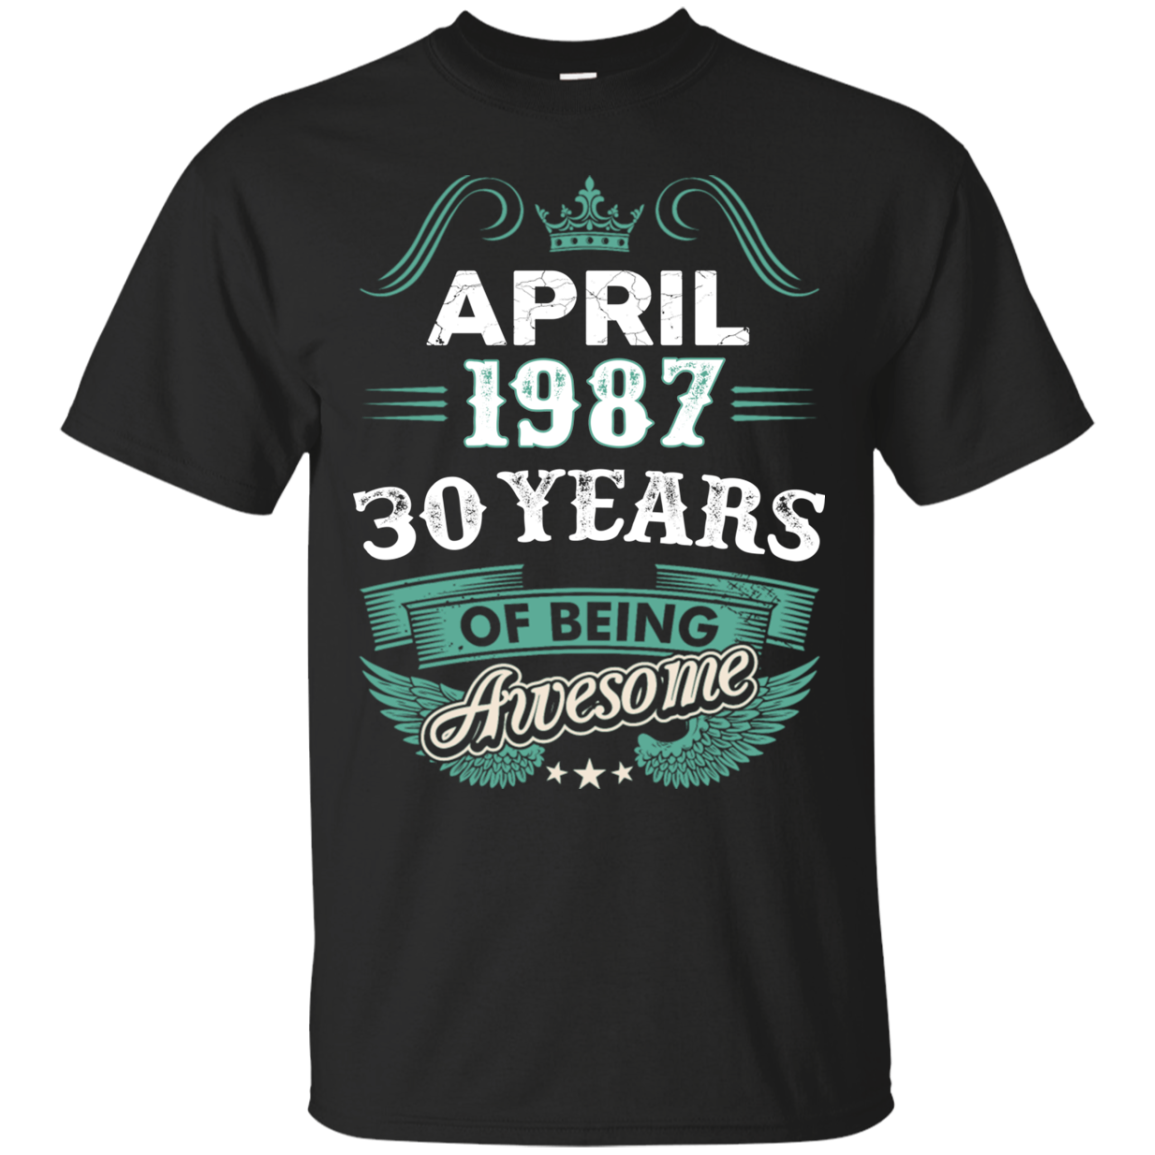 April 1987 30 Years of being Awesome t shirt Men